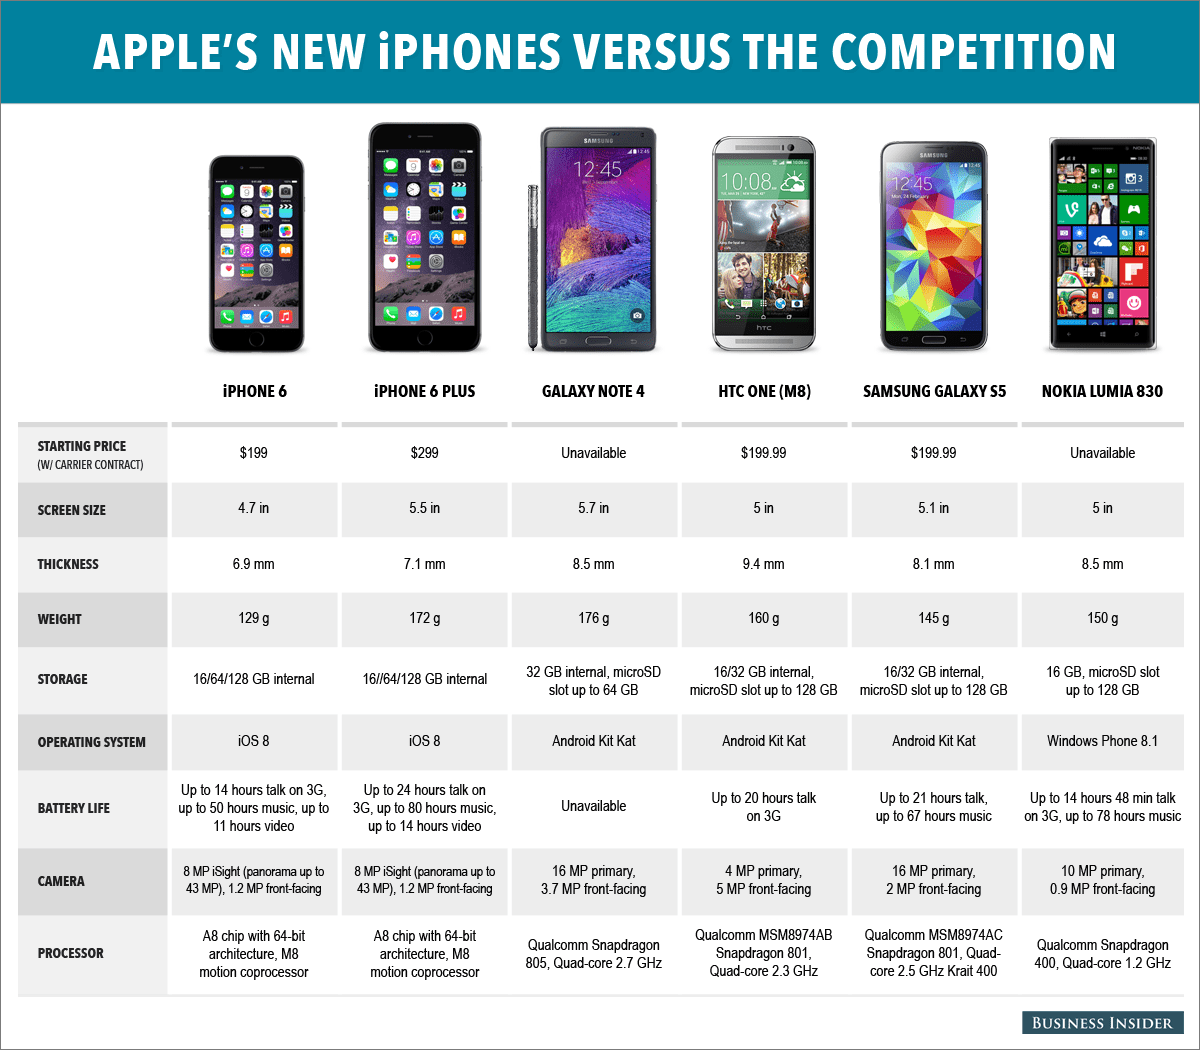 iphone 6 and iphone 6 plus in  parison to other smartphones